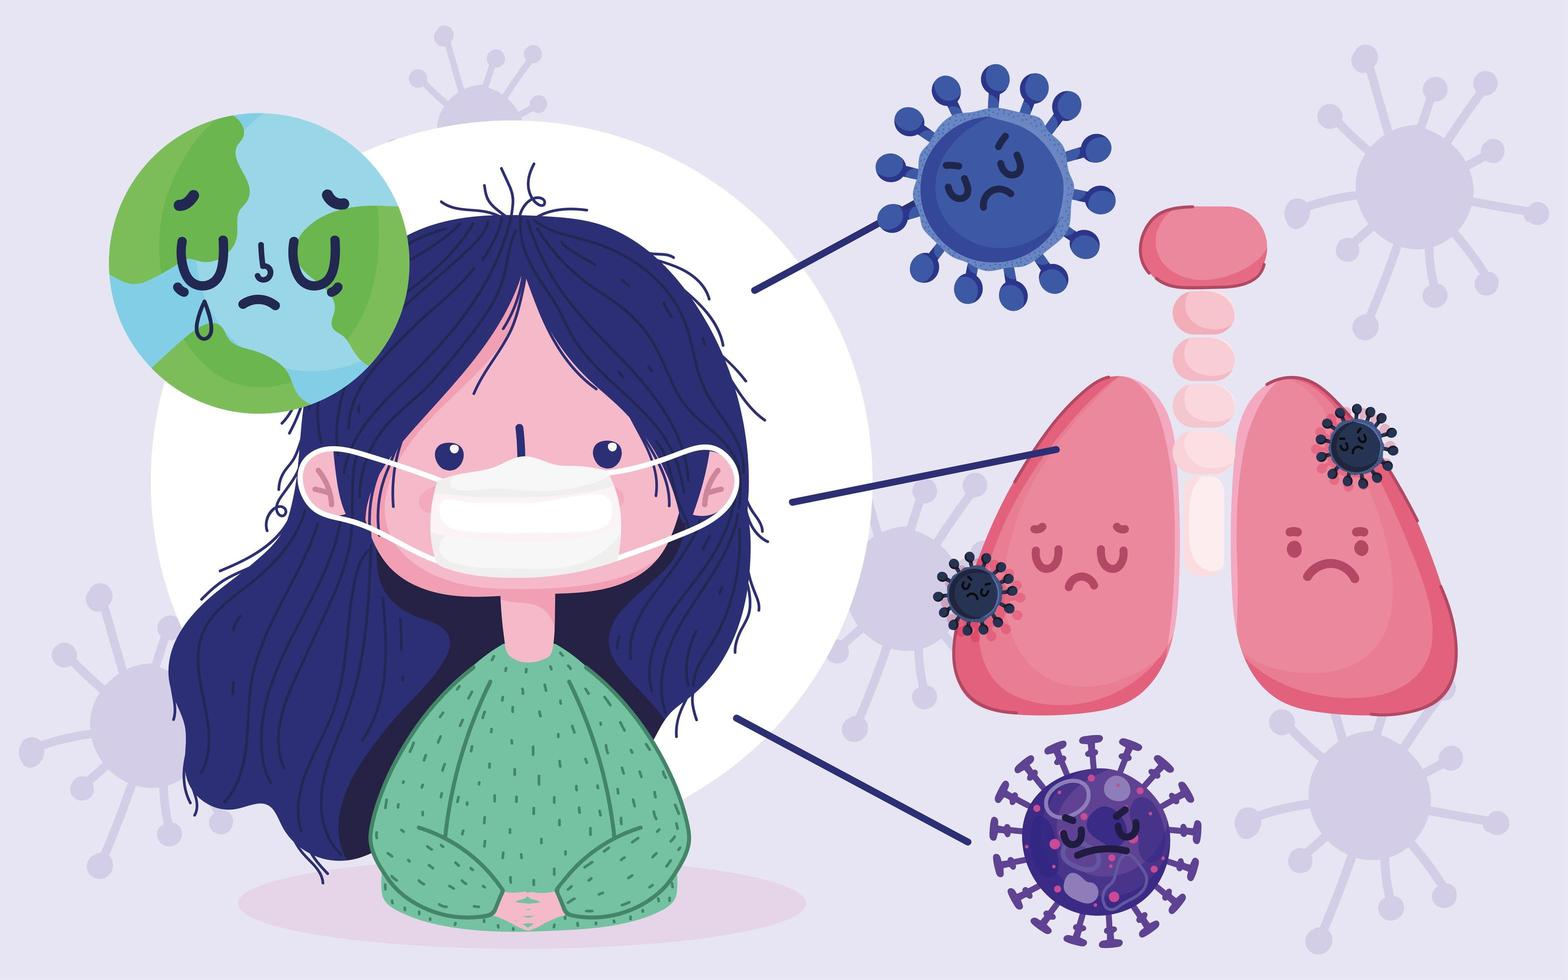 Covid 19 pandemic design with girl with protective mask  vector